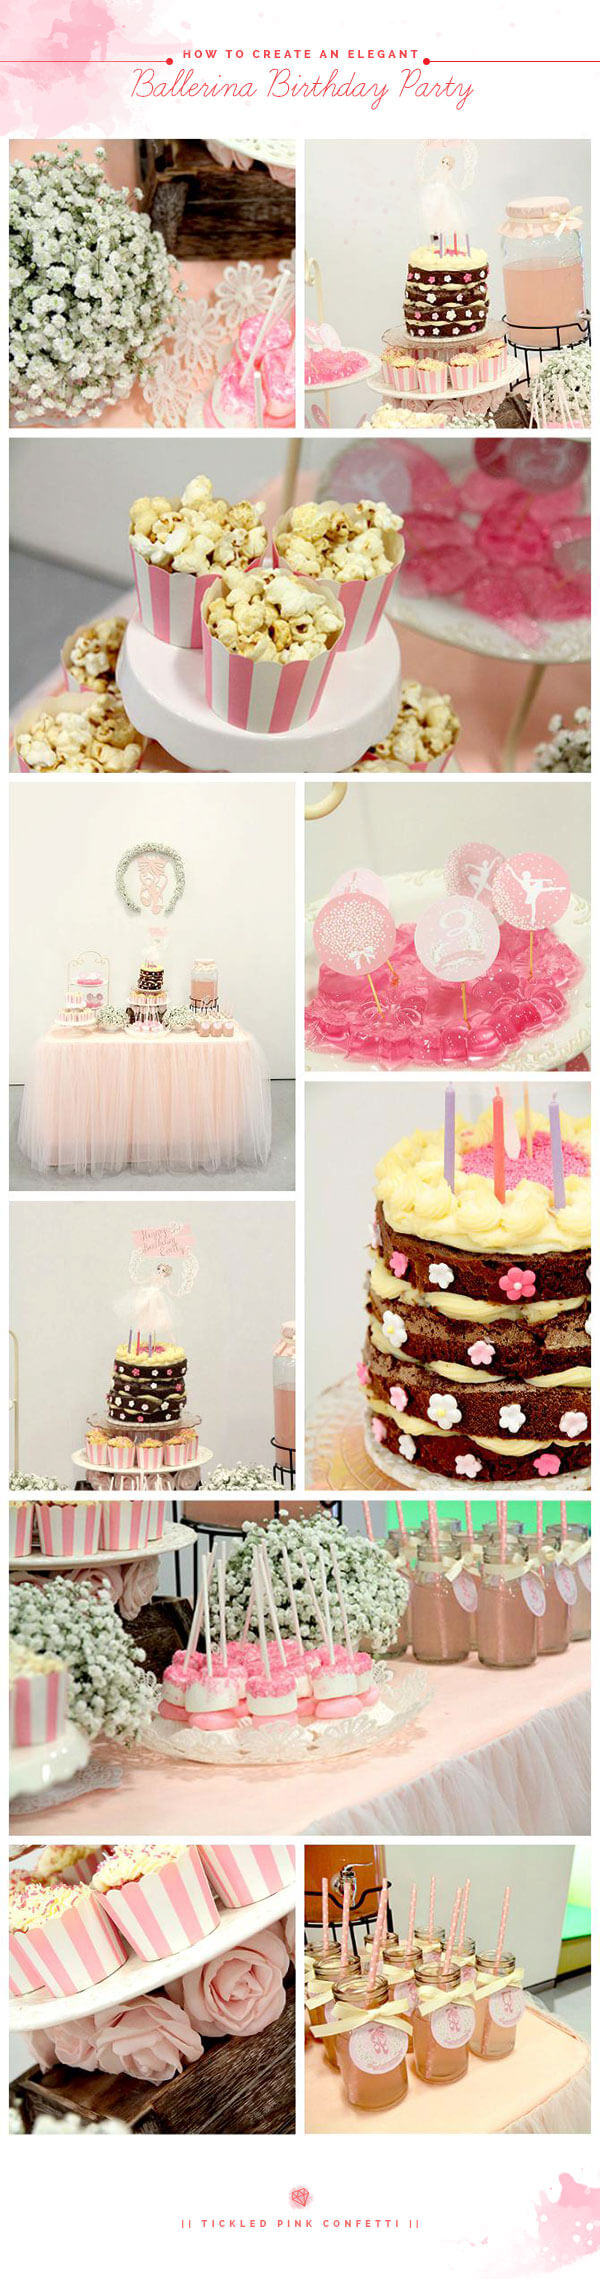 How to Create an Elegant Ballerina Birthday Party